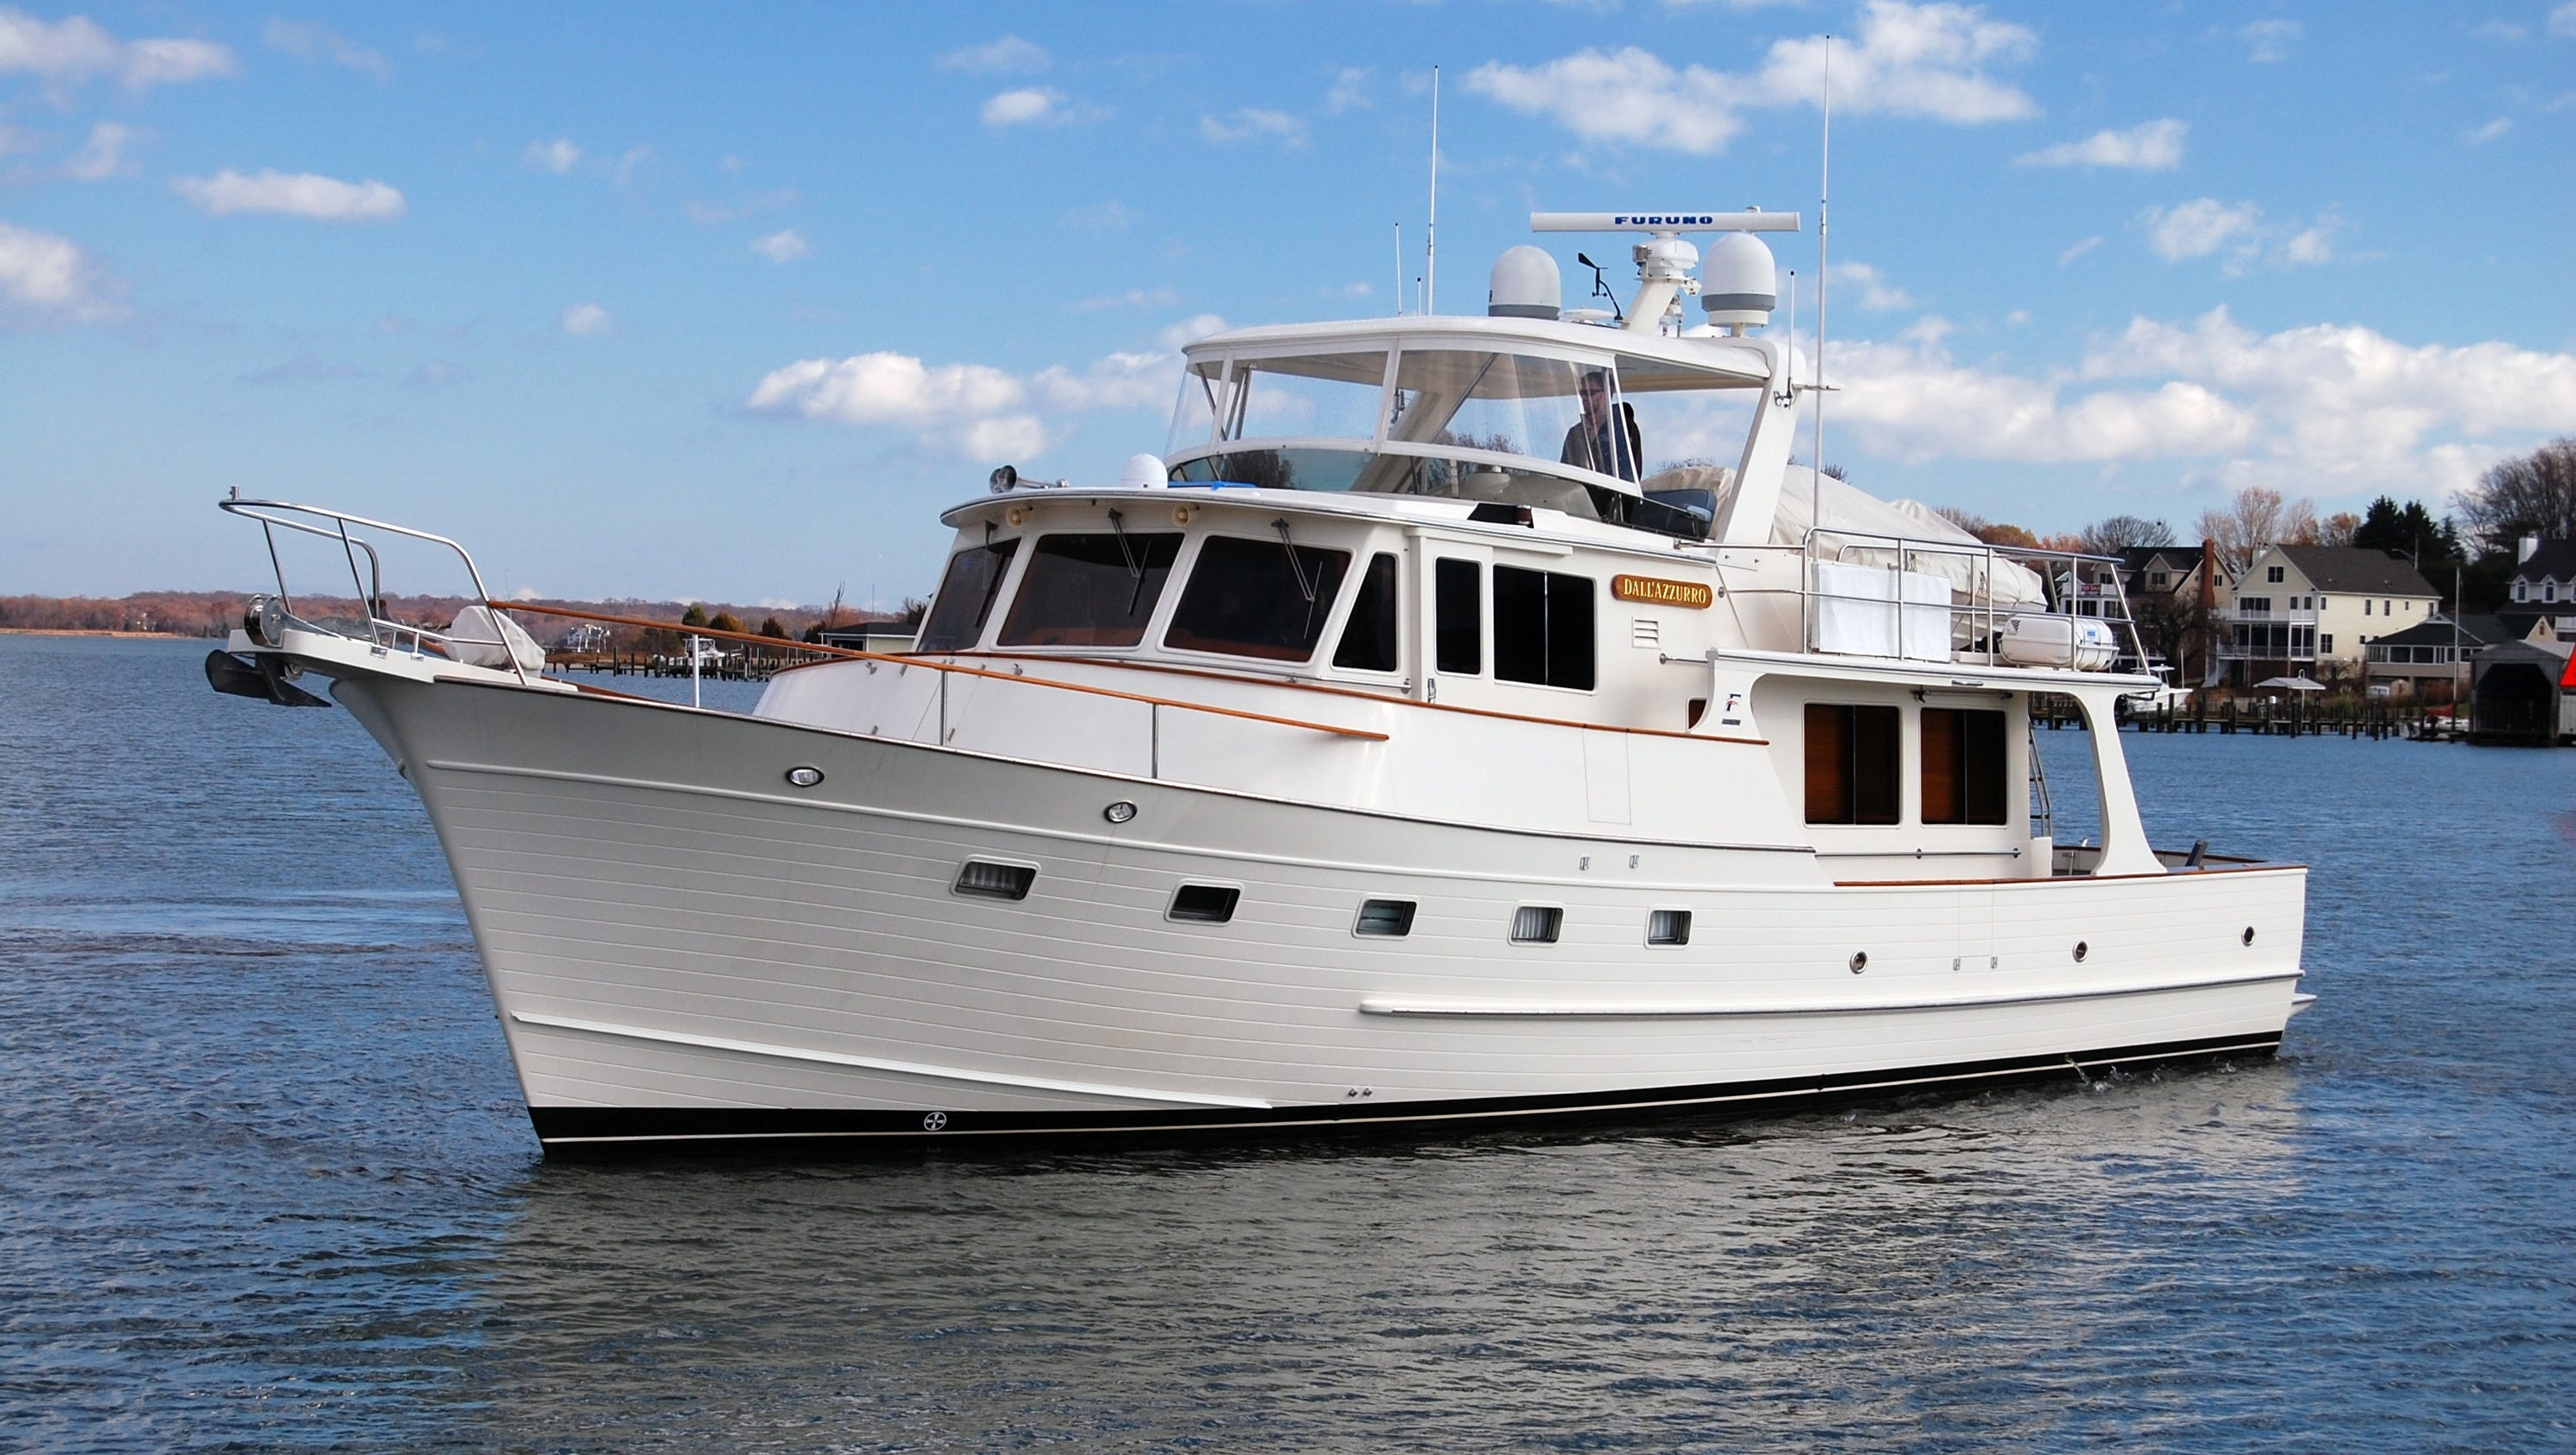 Trawlers for sale for $1M